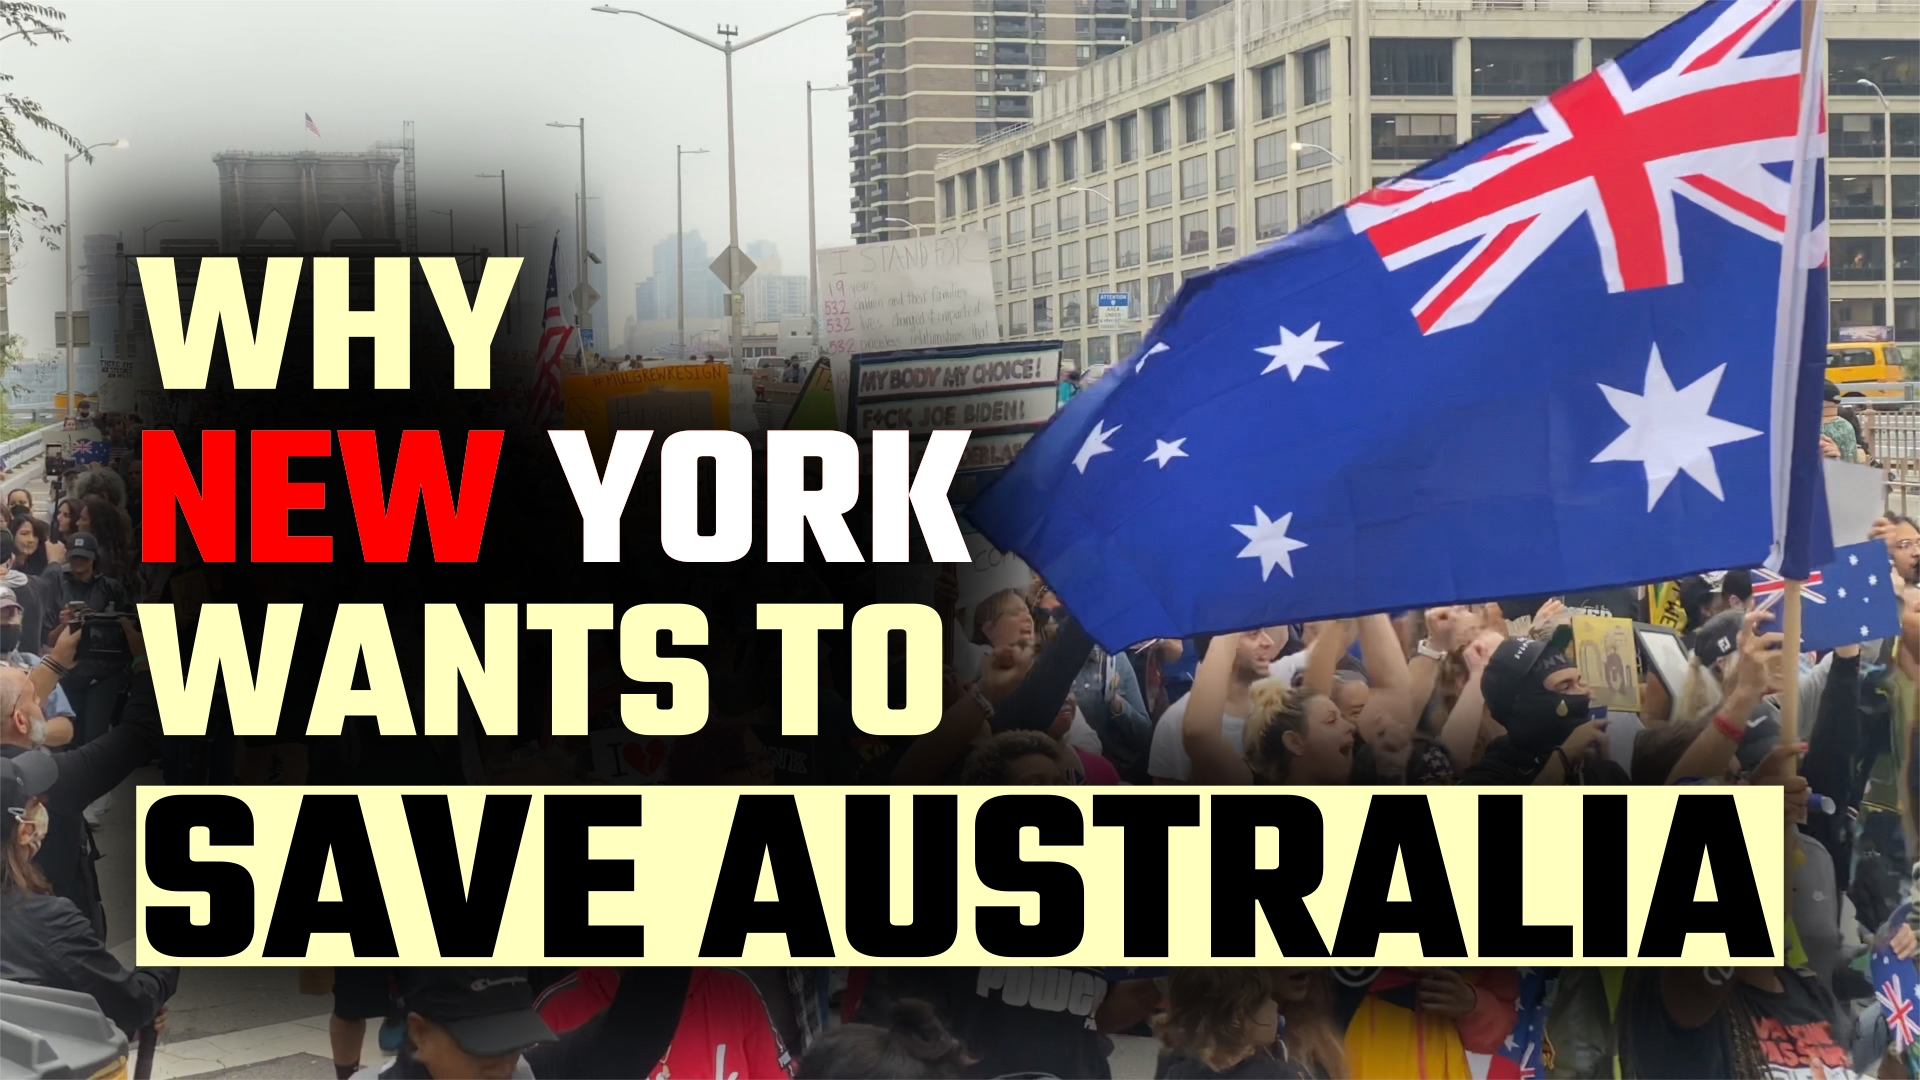 The 'Save Australia' New York protest video they don't want you to see